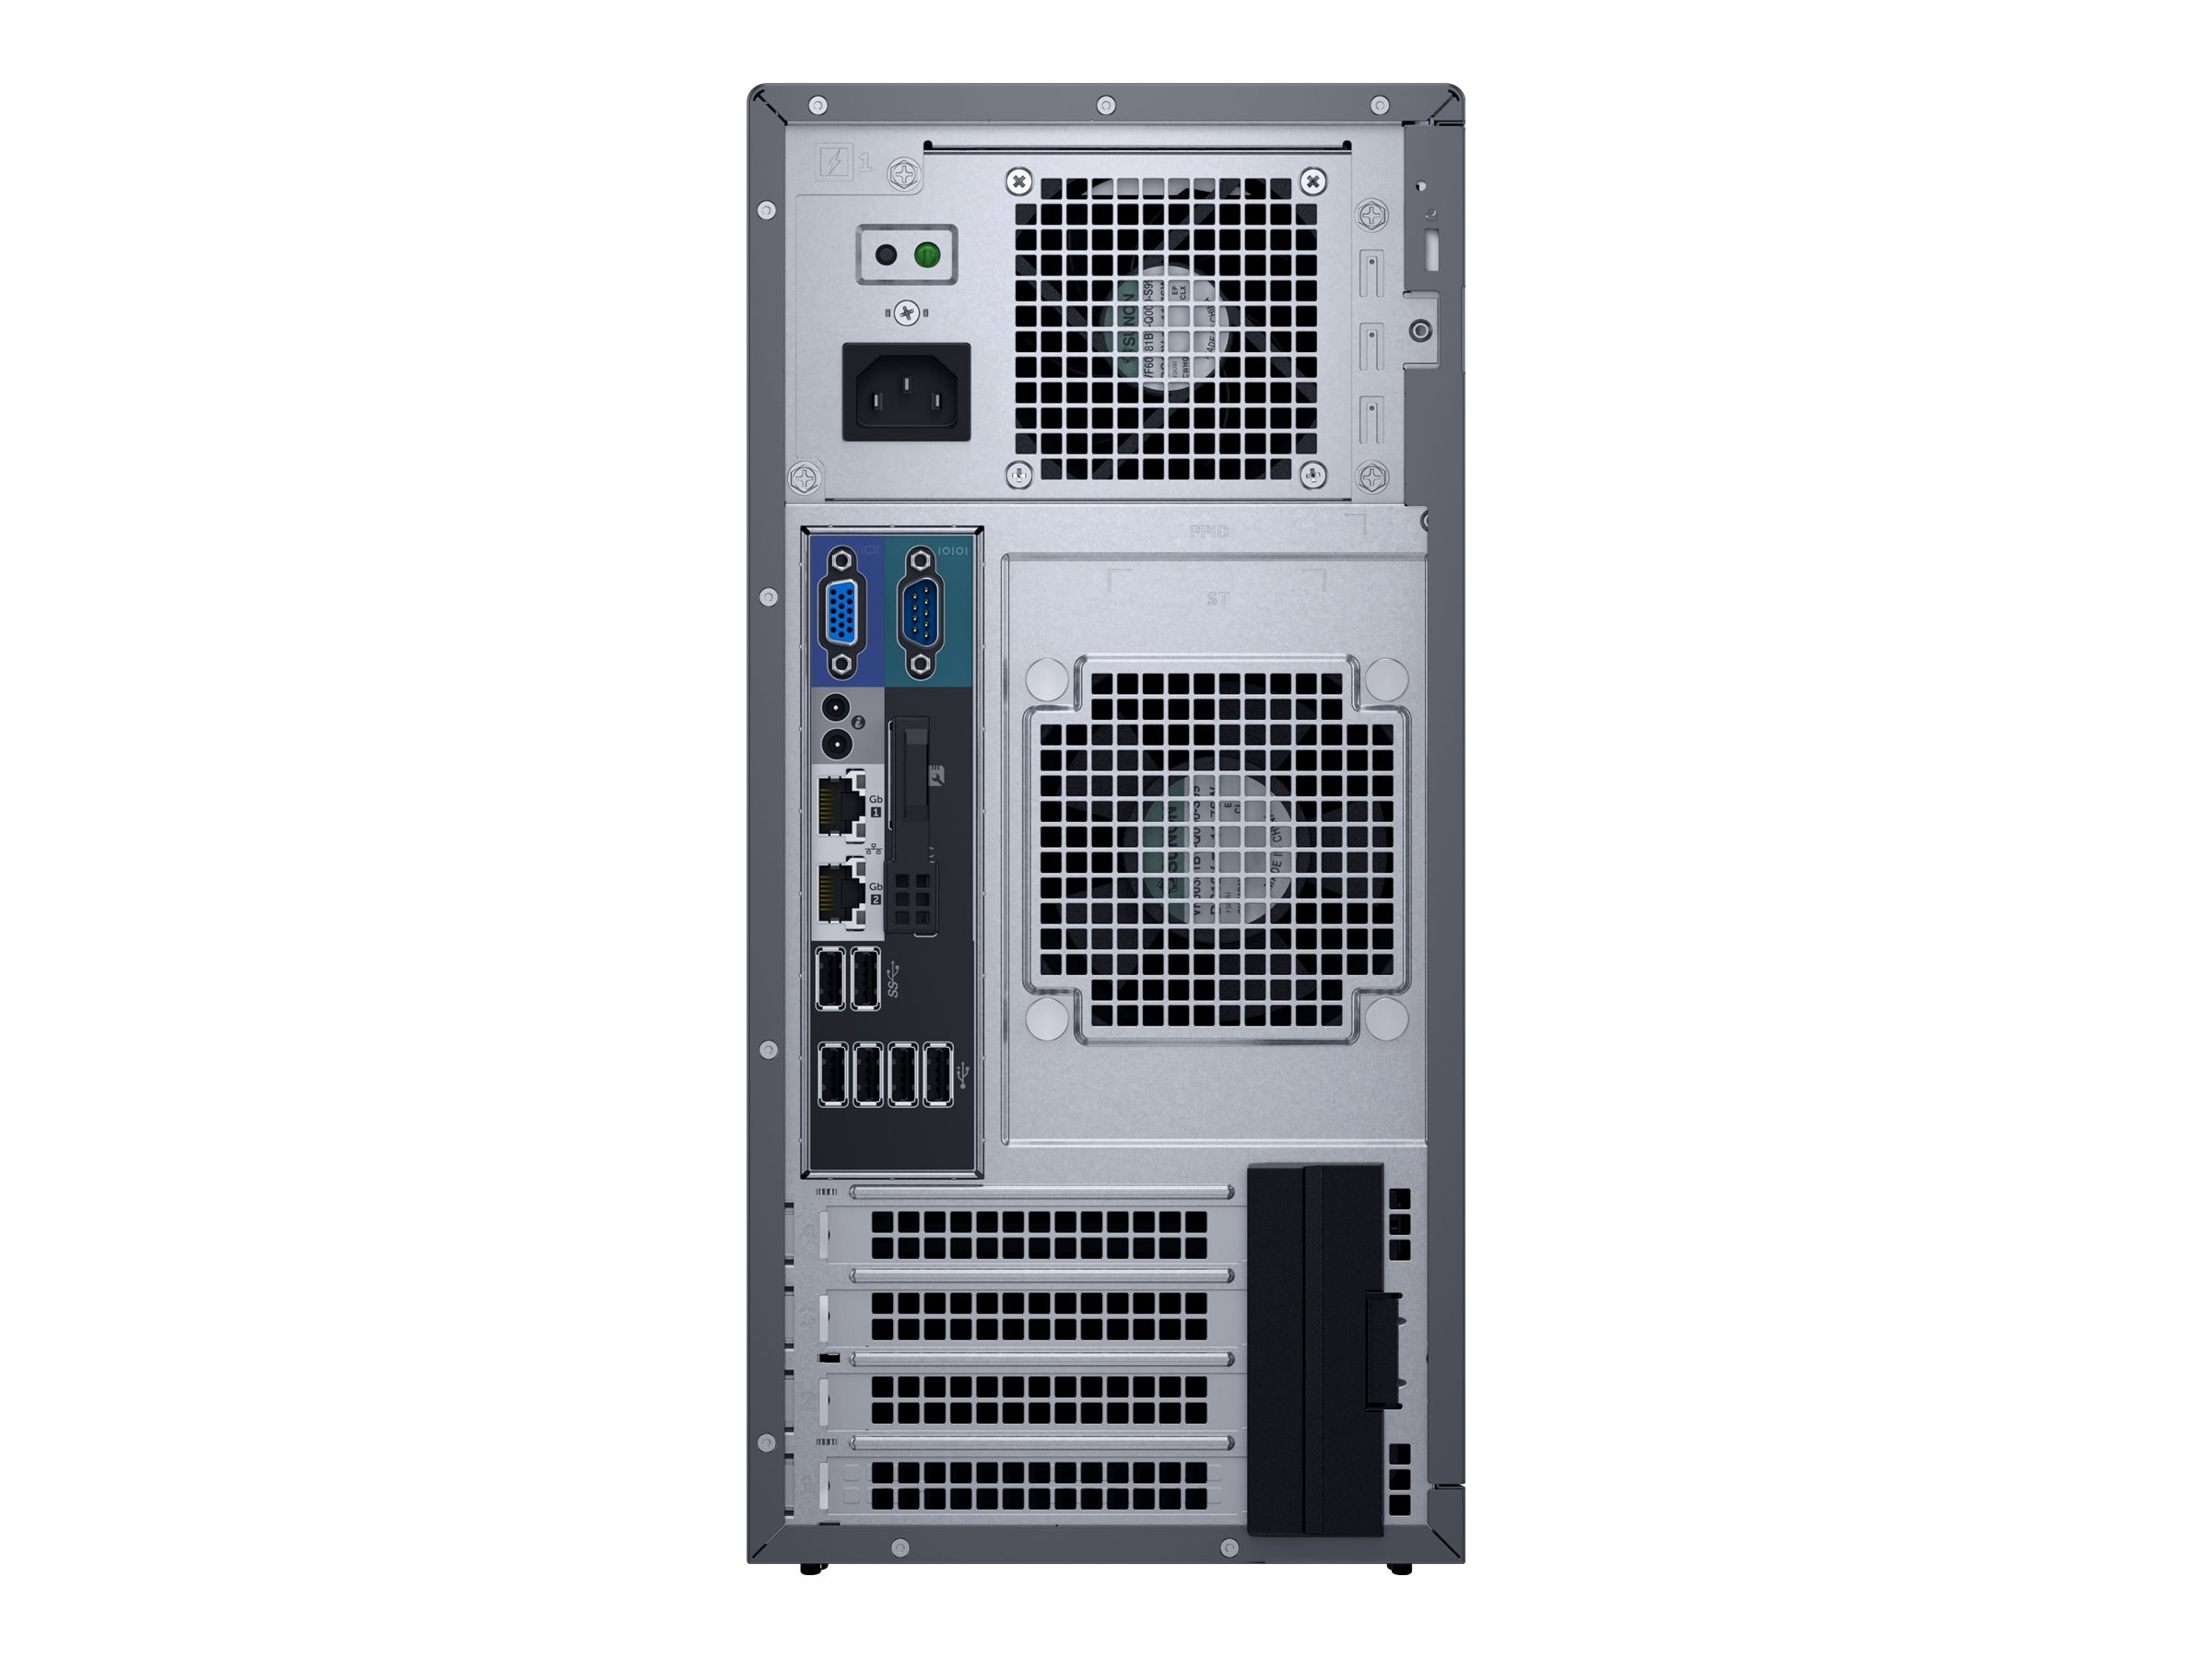 Dell PowerEdge T130 Tower Xeon QC E3-1240 v5 3.5GHz 8GB 1x1TB SATA 4x3.5 DC Bays H330 DVD 2xGbE, 463-7652